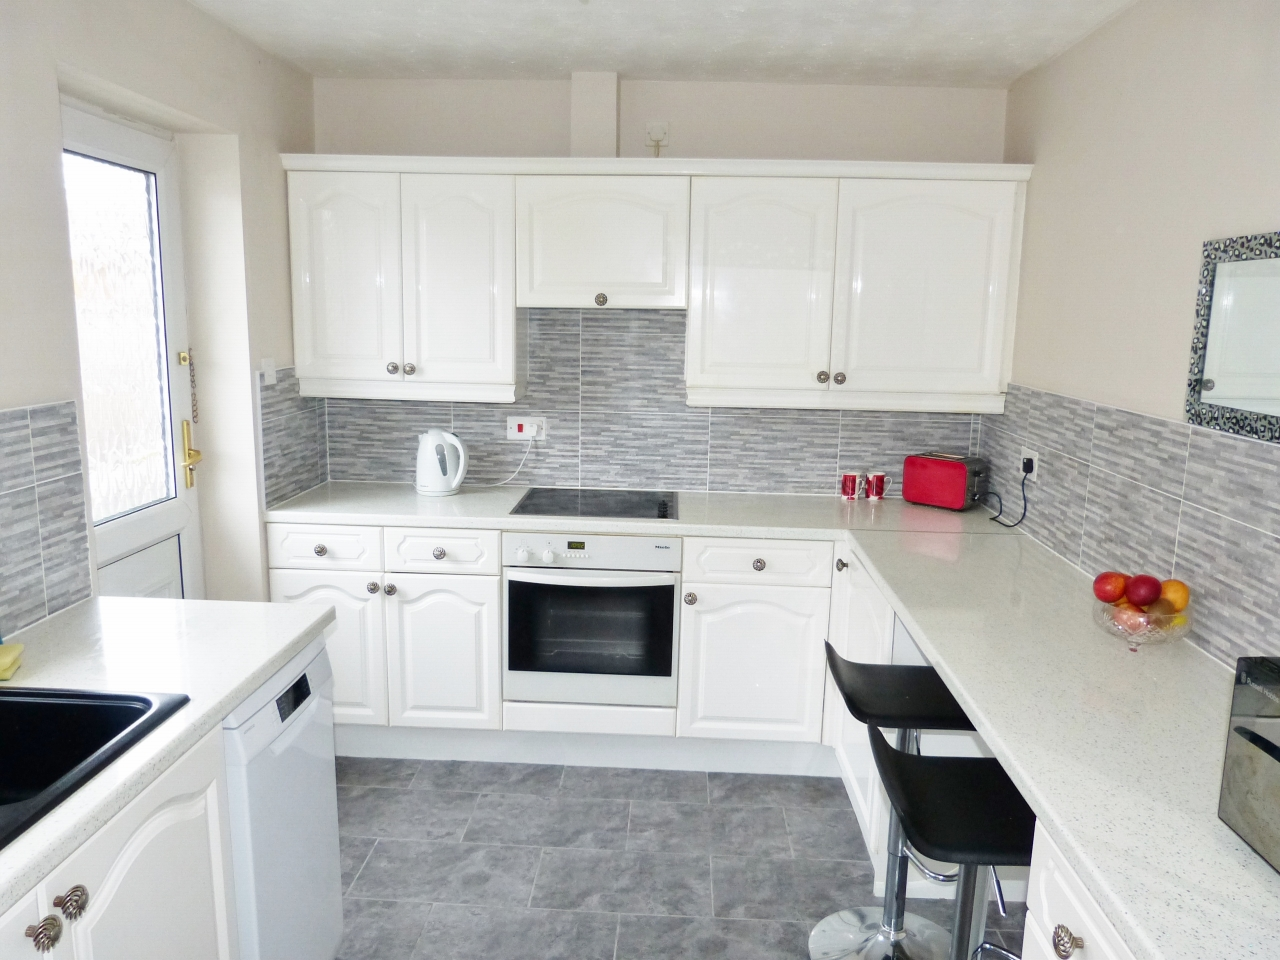 3 bedroom detached bungalow For Sale in Abergele - Photograph 4